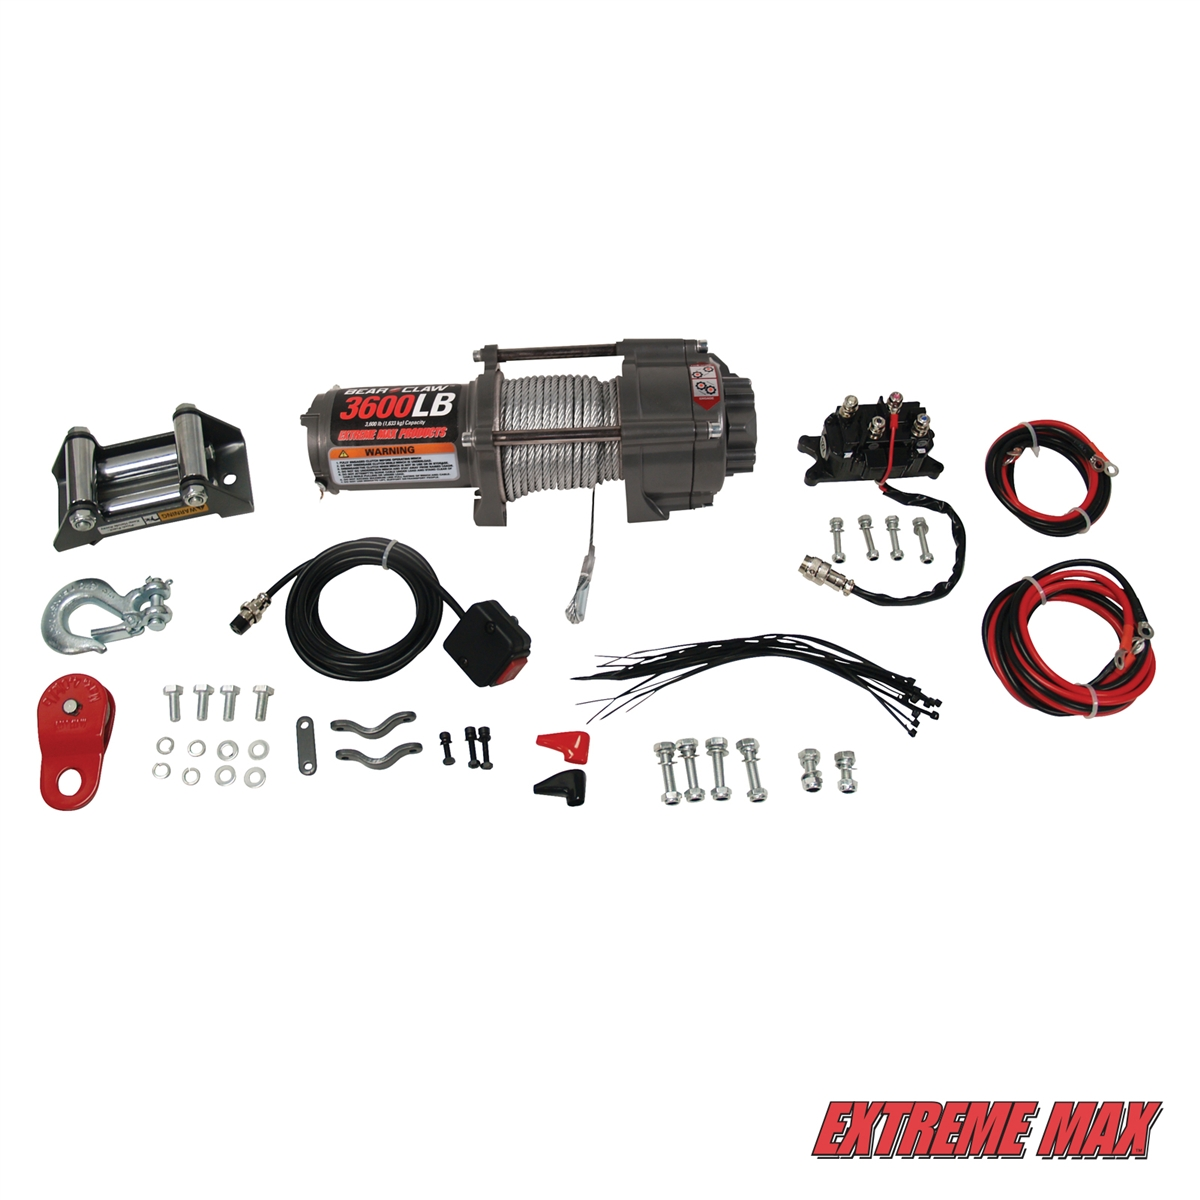 5600.3072 5 extreme max 5600 3072 bear claw atv winch 3100 lb bear claw winch wiring diagram at virtualis.co